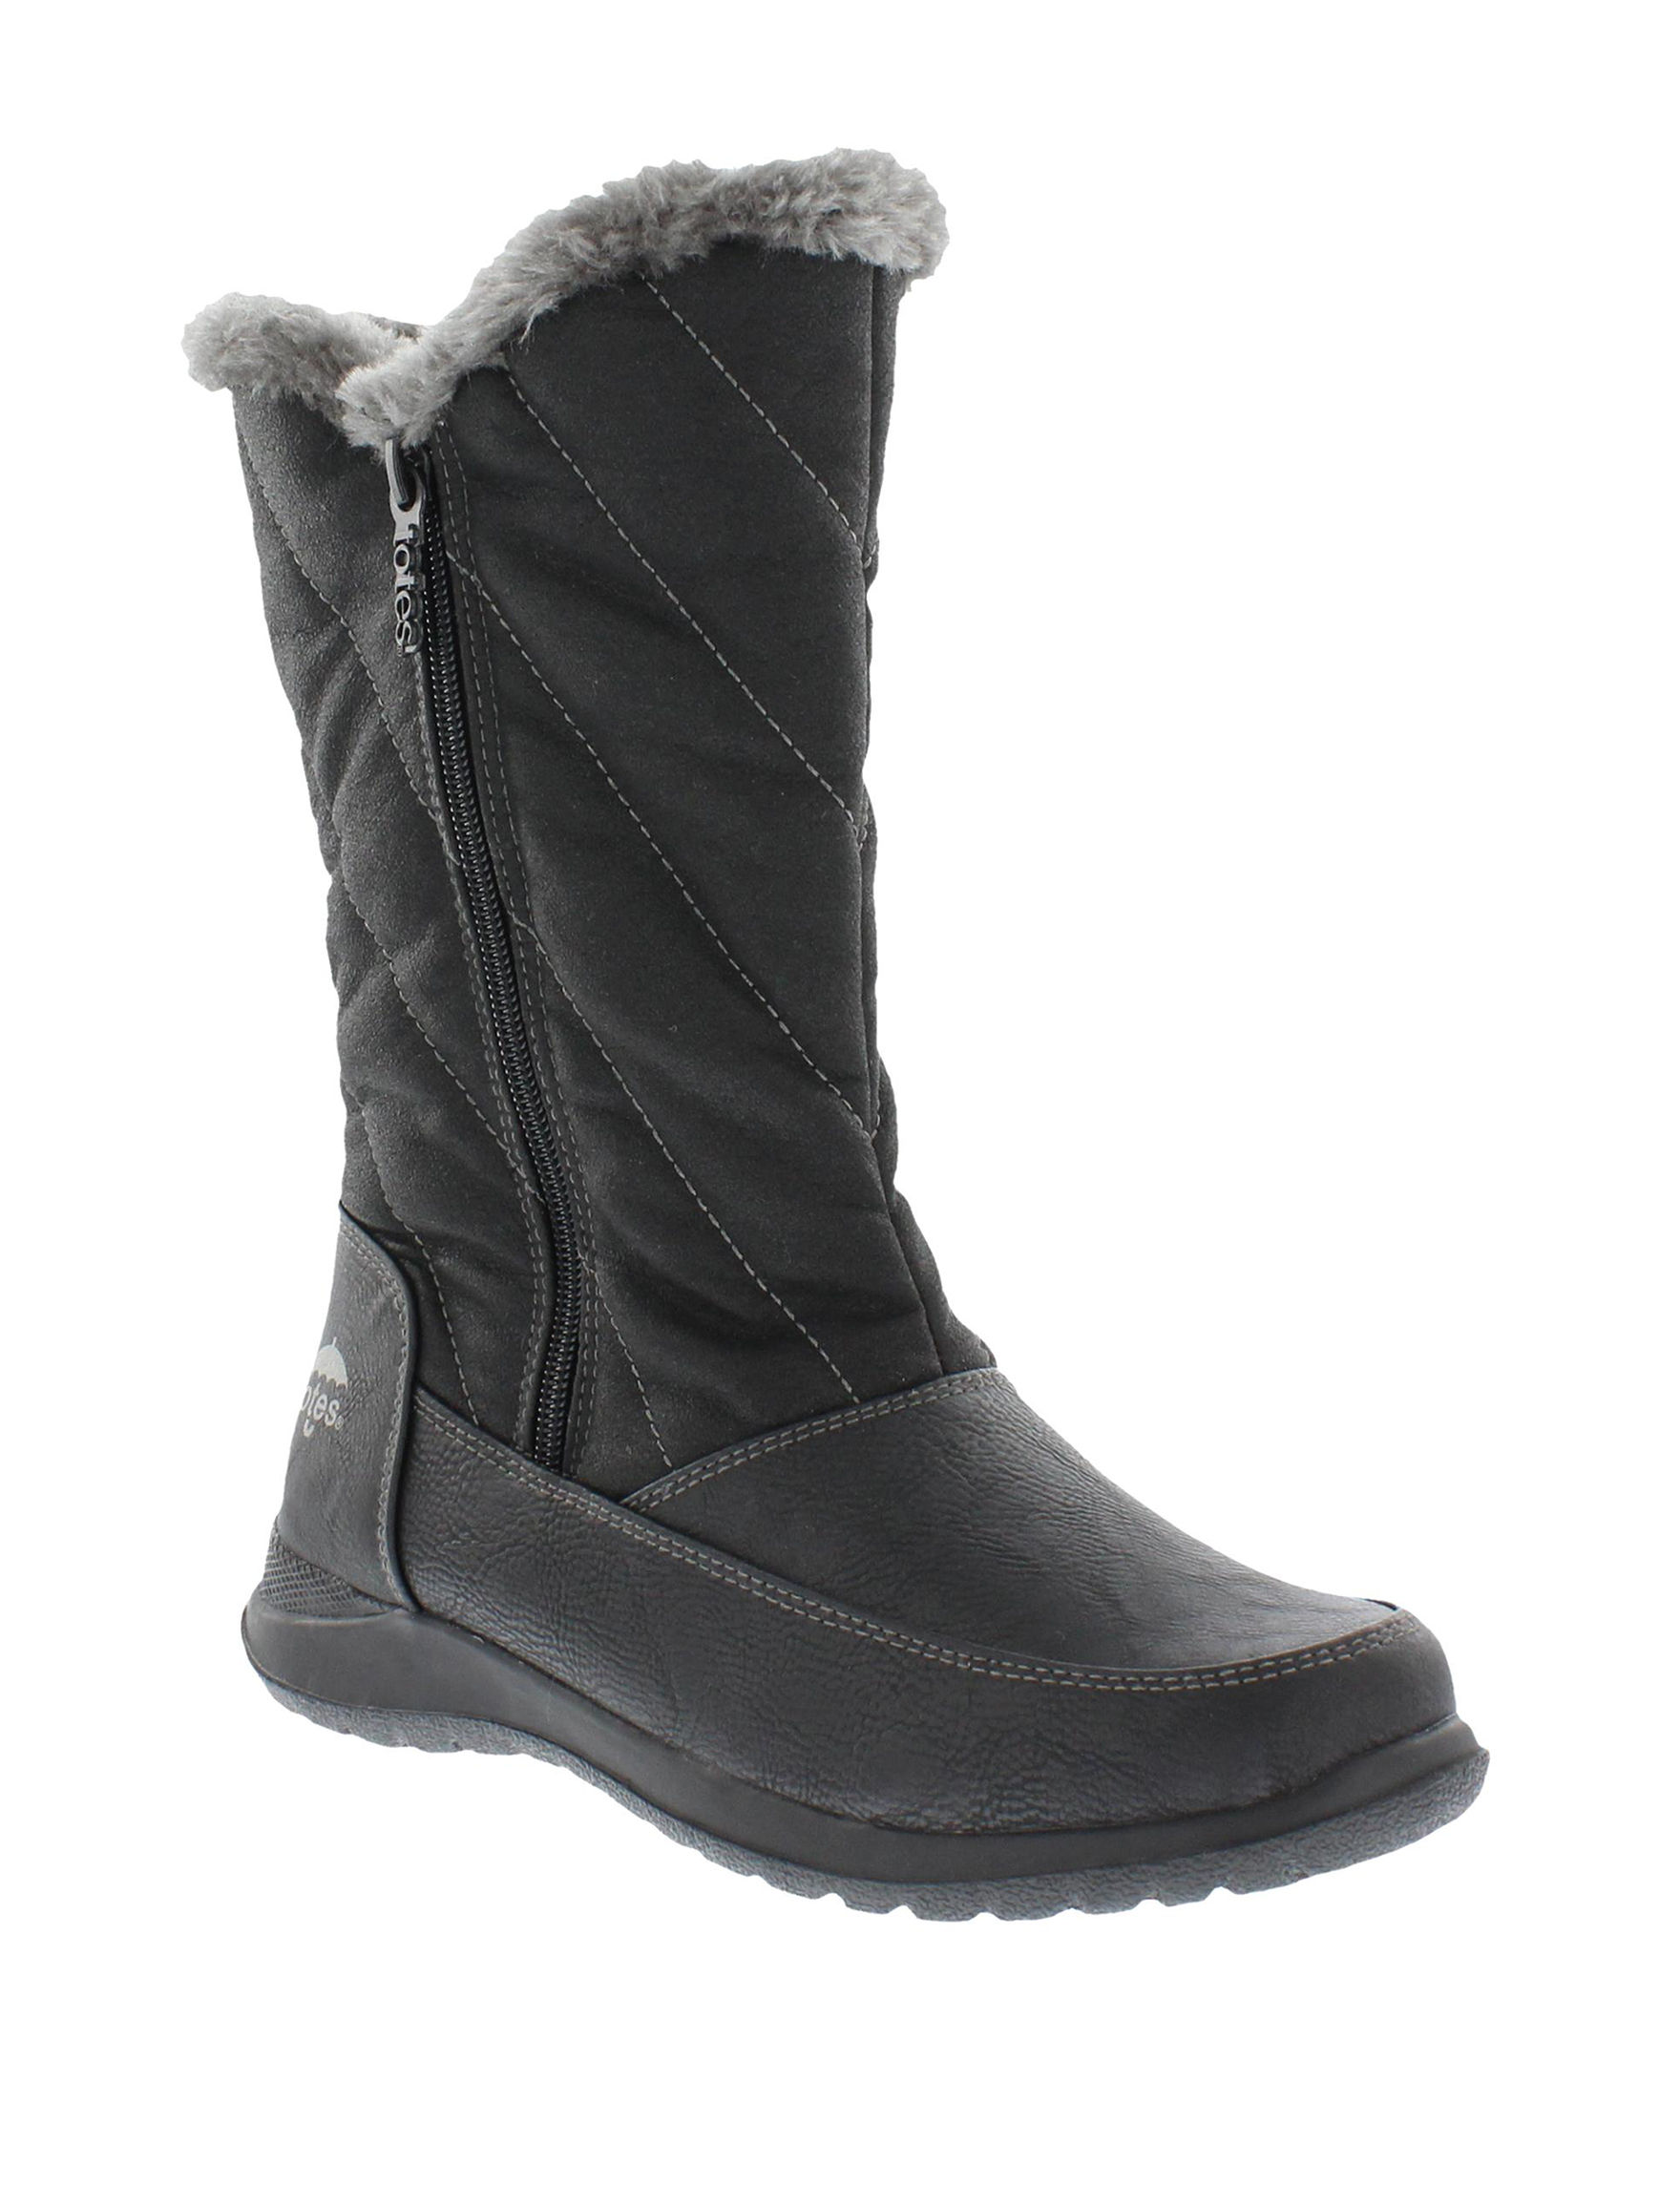 Totes Black Winter Boots